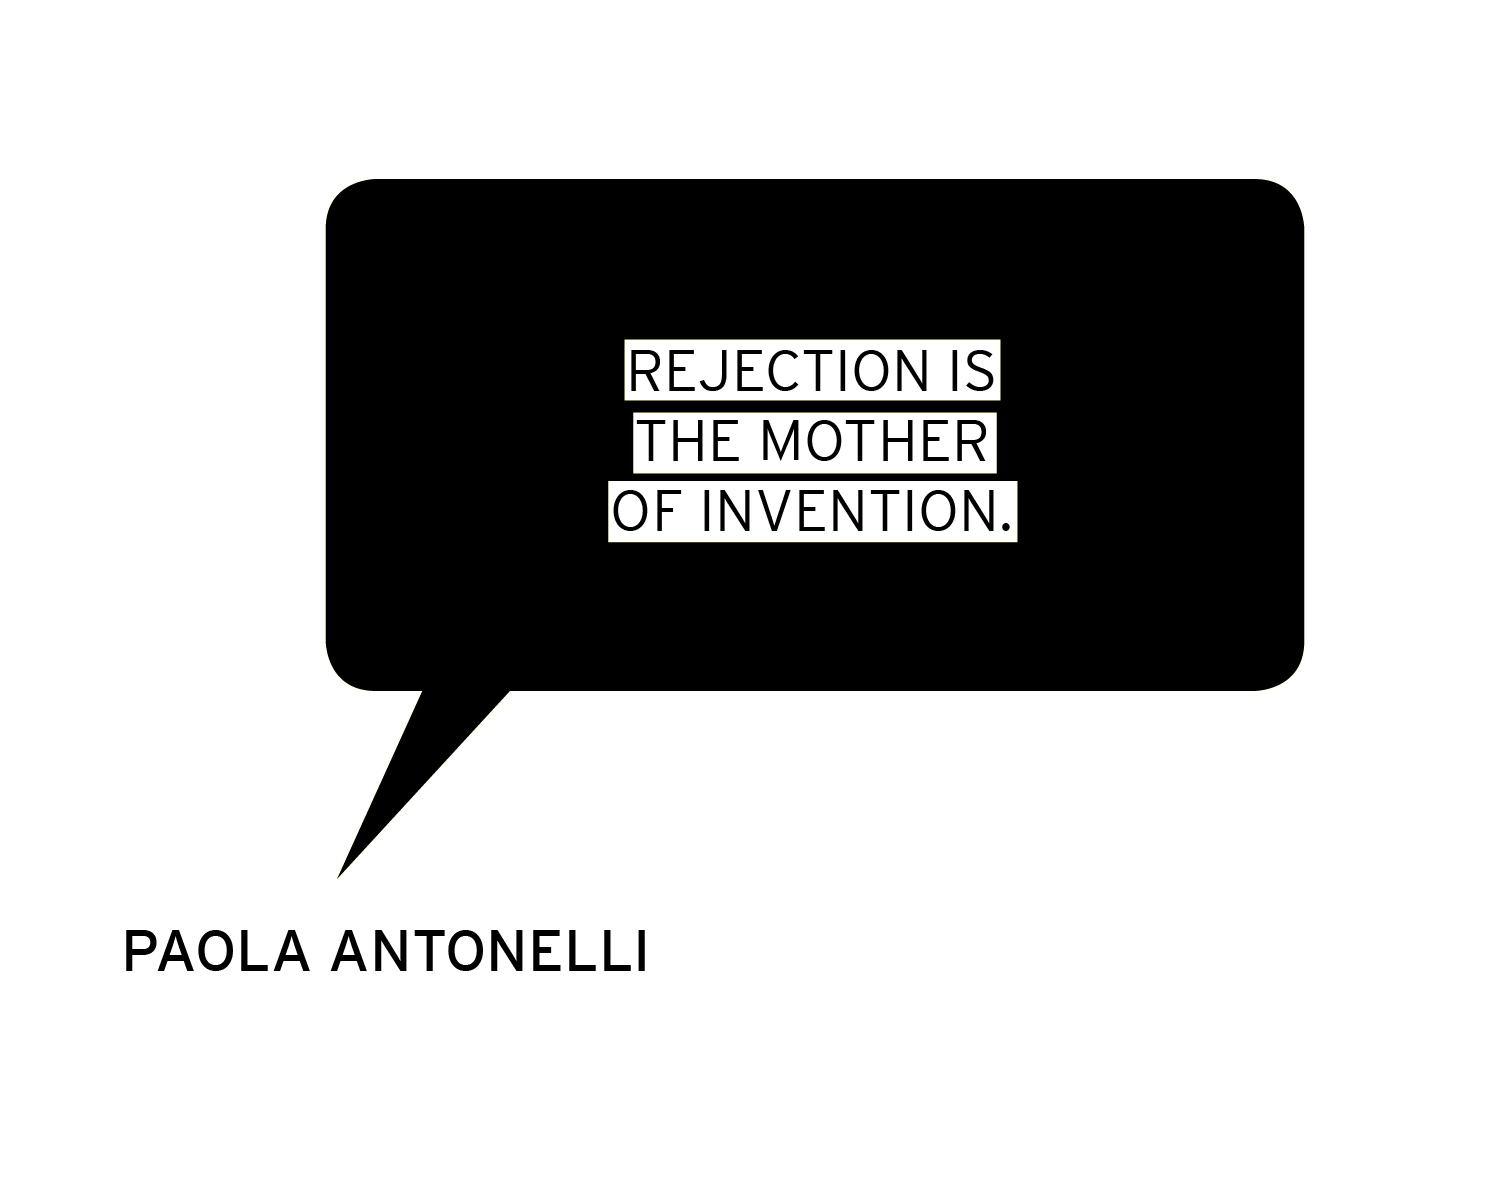 quote by moma curator paola antonelli